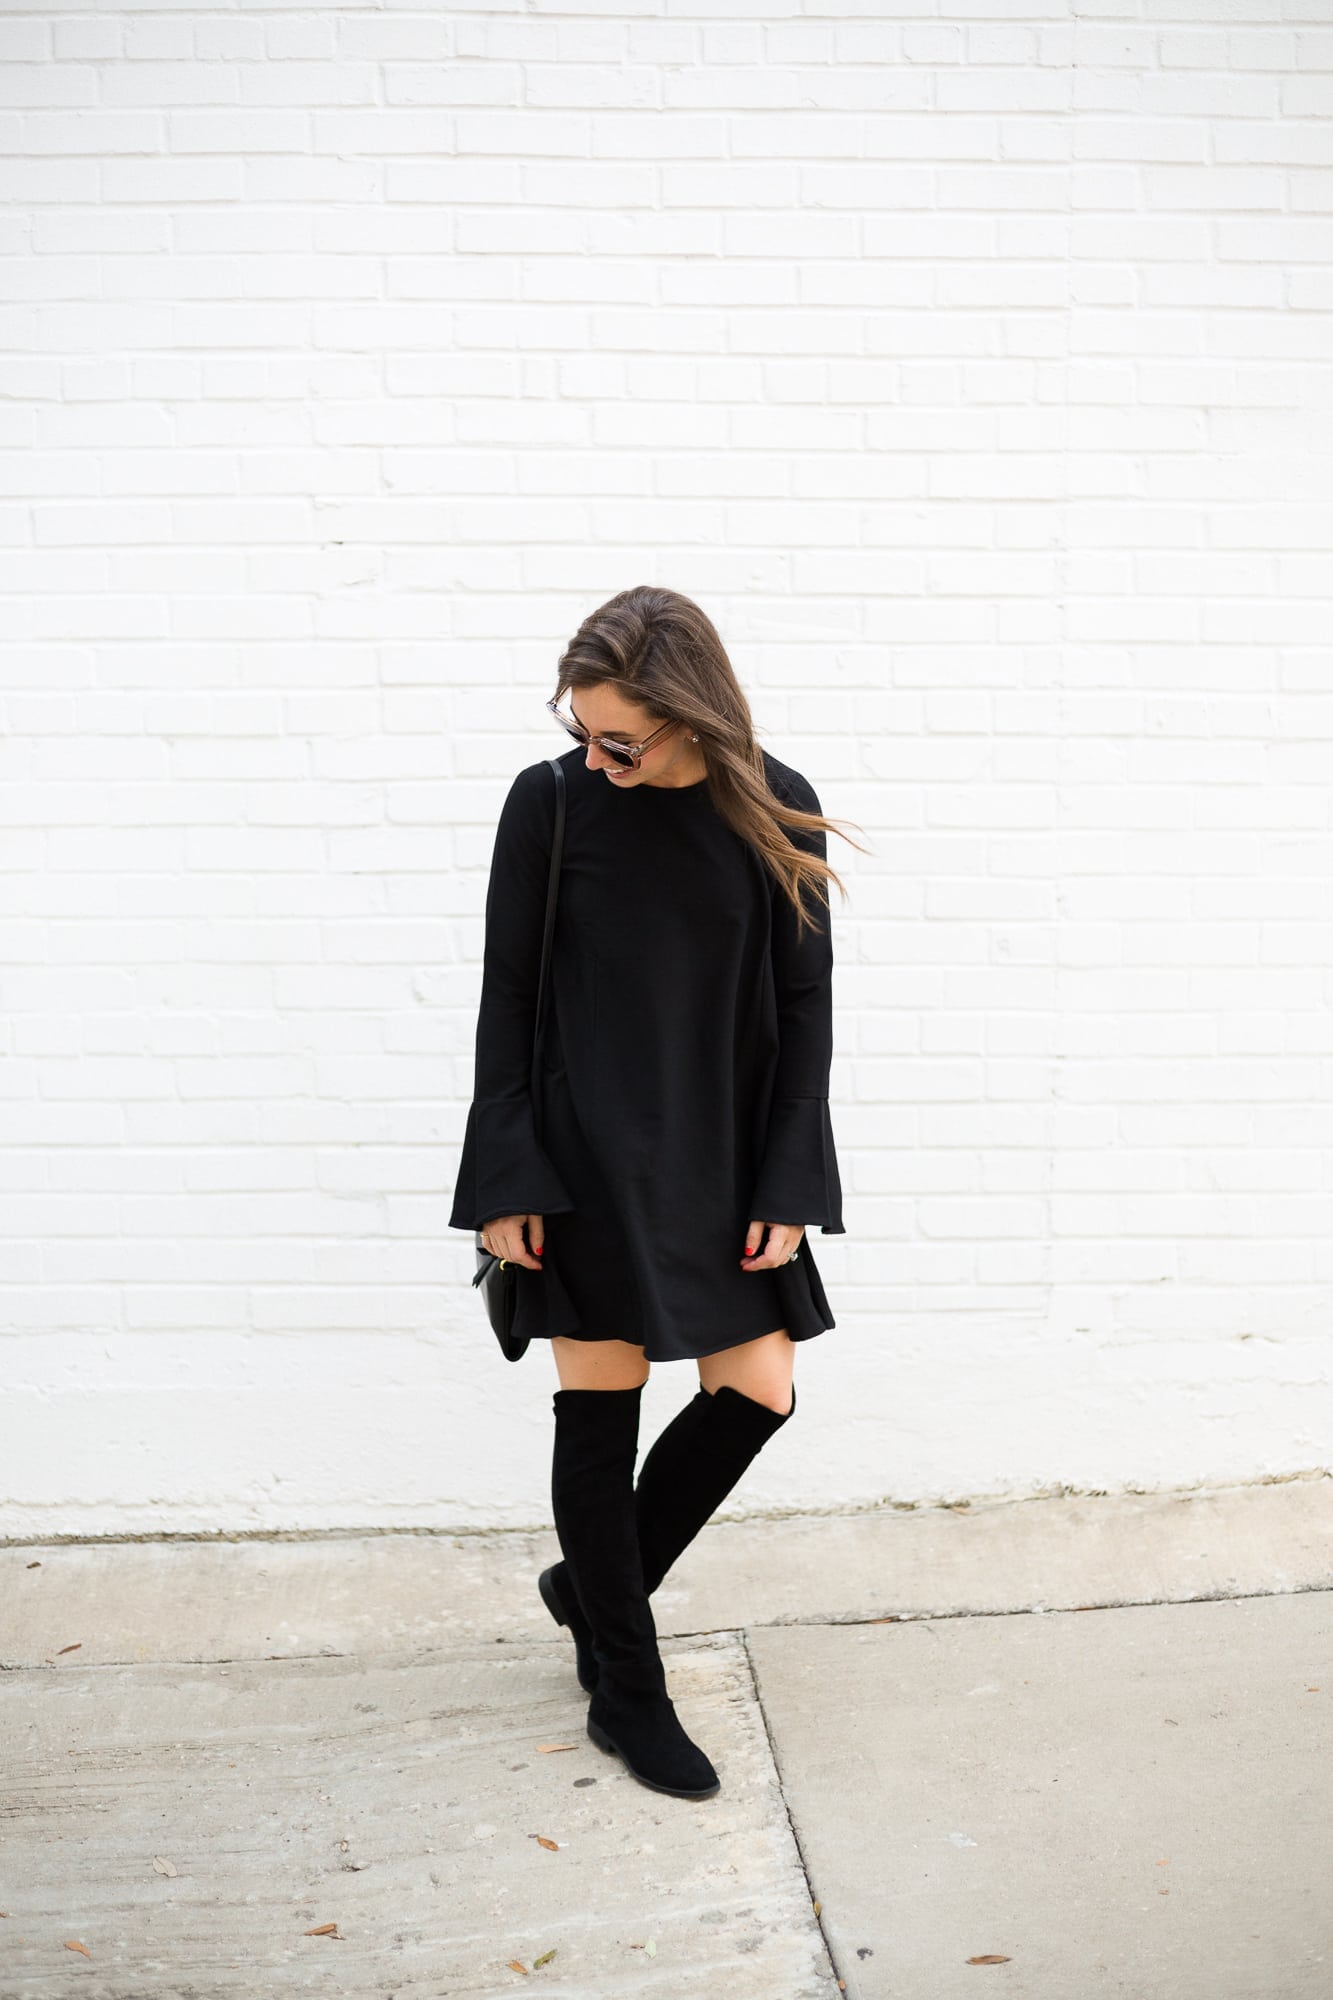 Black Dress and Over the Knee Boots